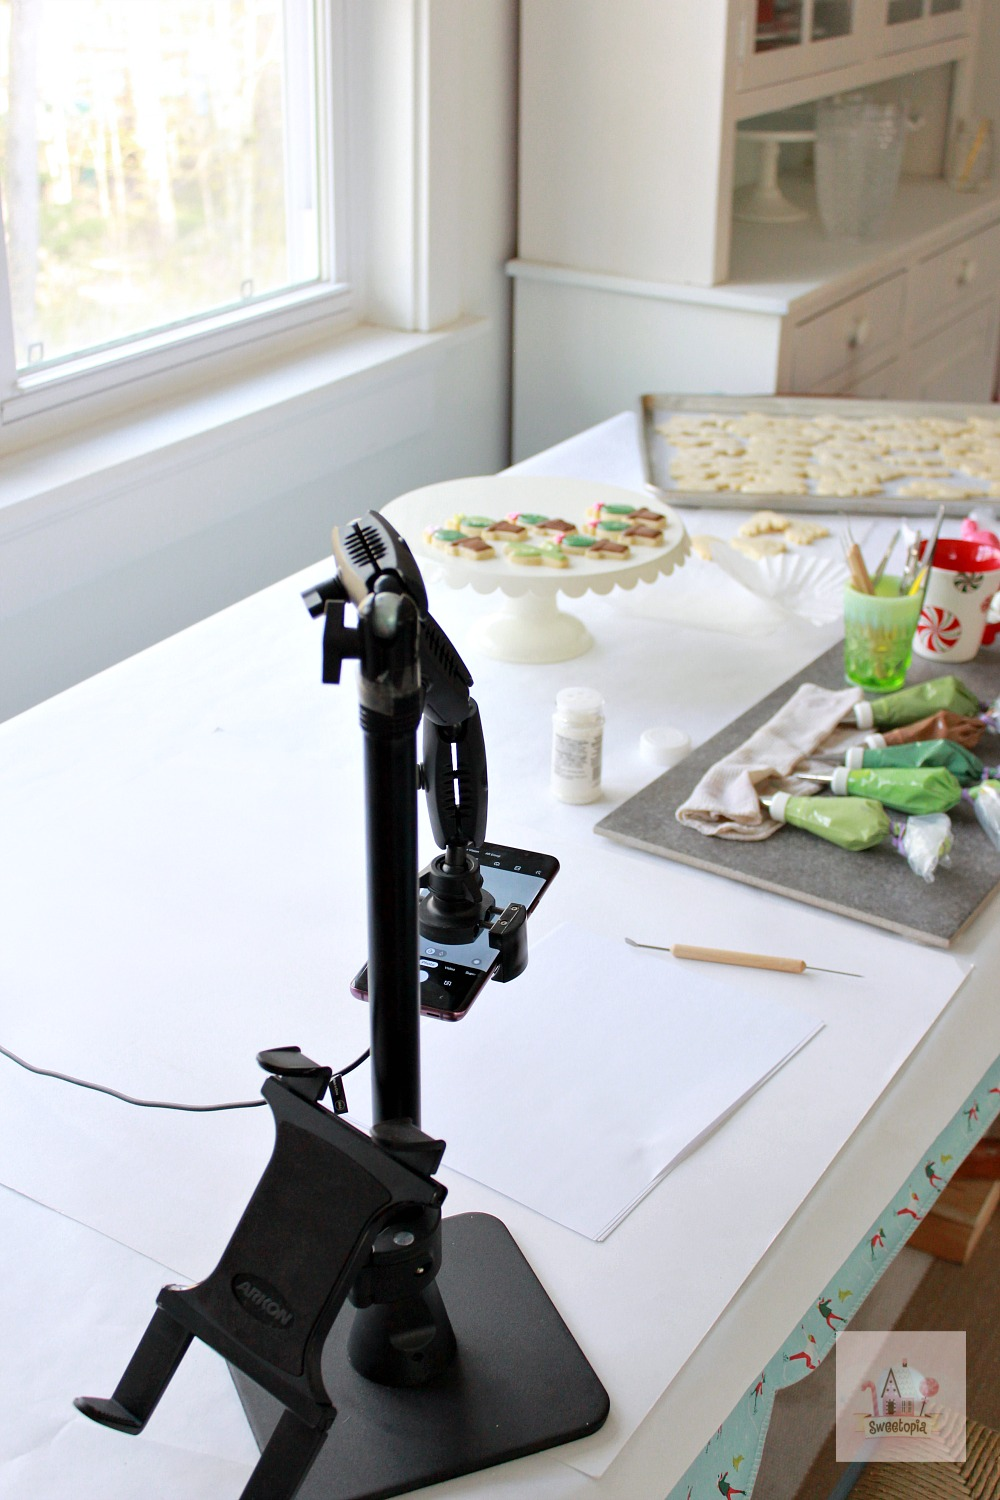 Arkon Mount Cookie Decorating Space